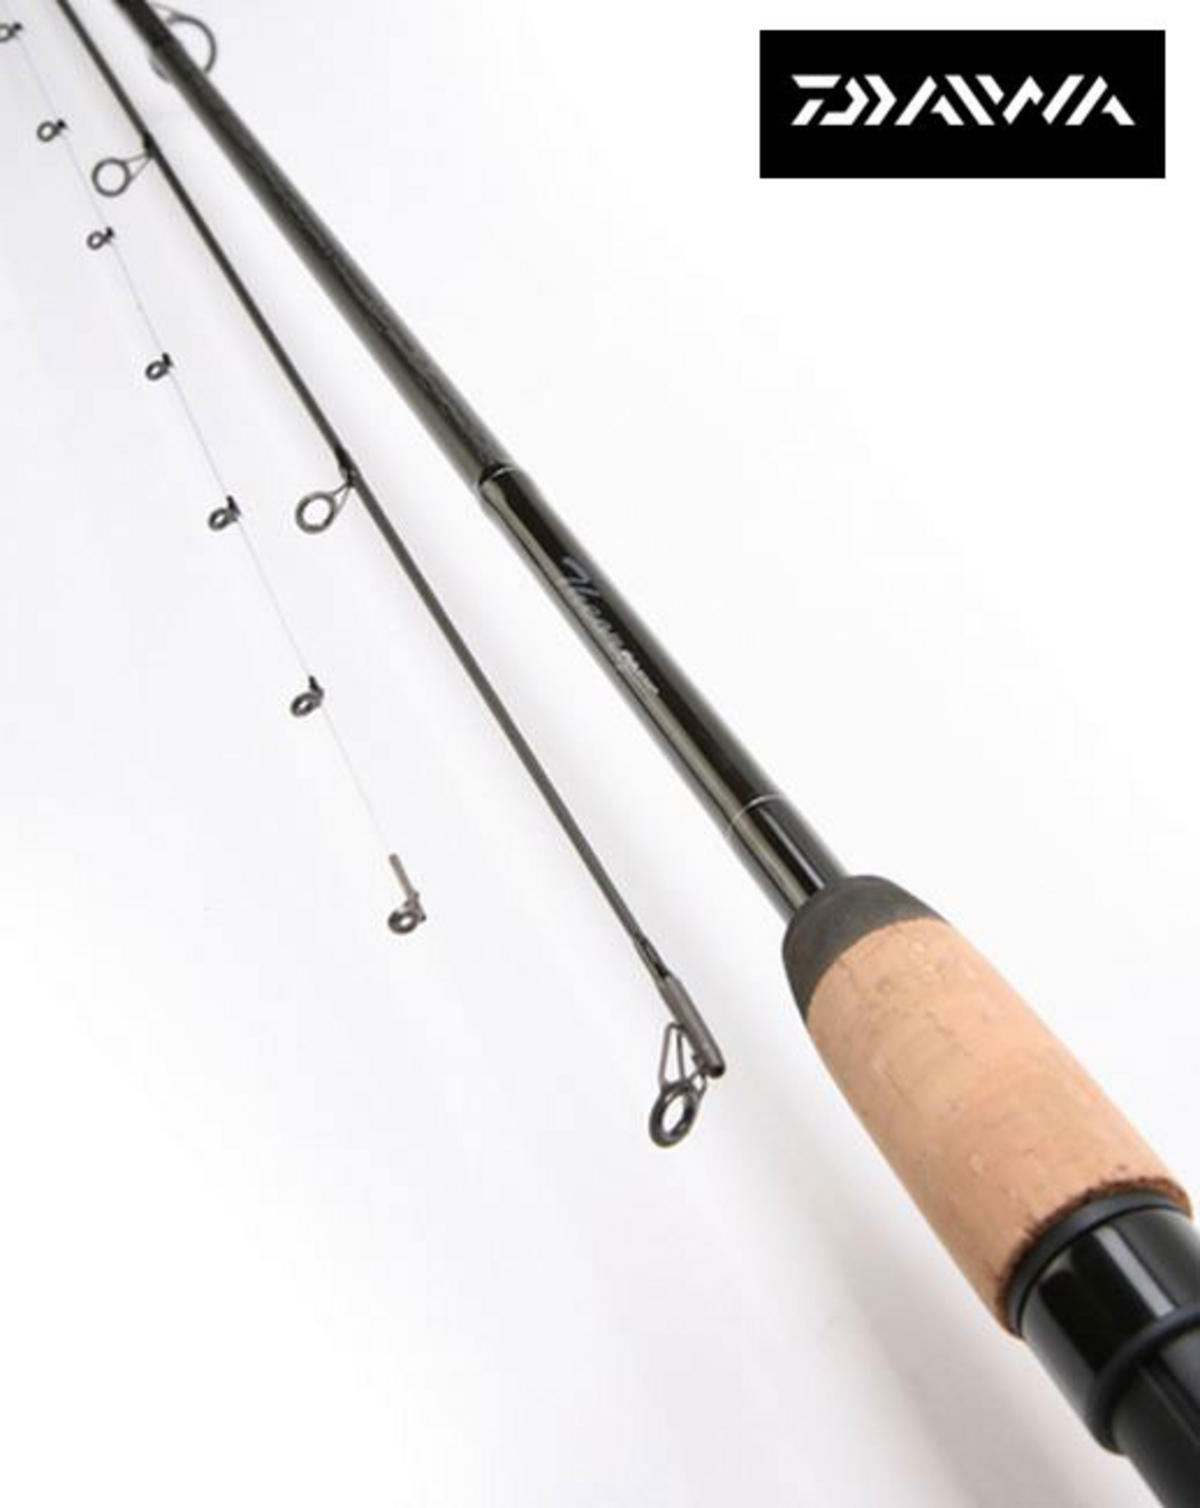 NEW DAIWA THEORY SPECIALIST ROD 12' 2PC 1.5LB Model No. THSP2112TT-AU